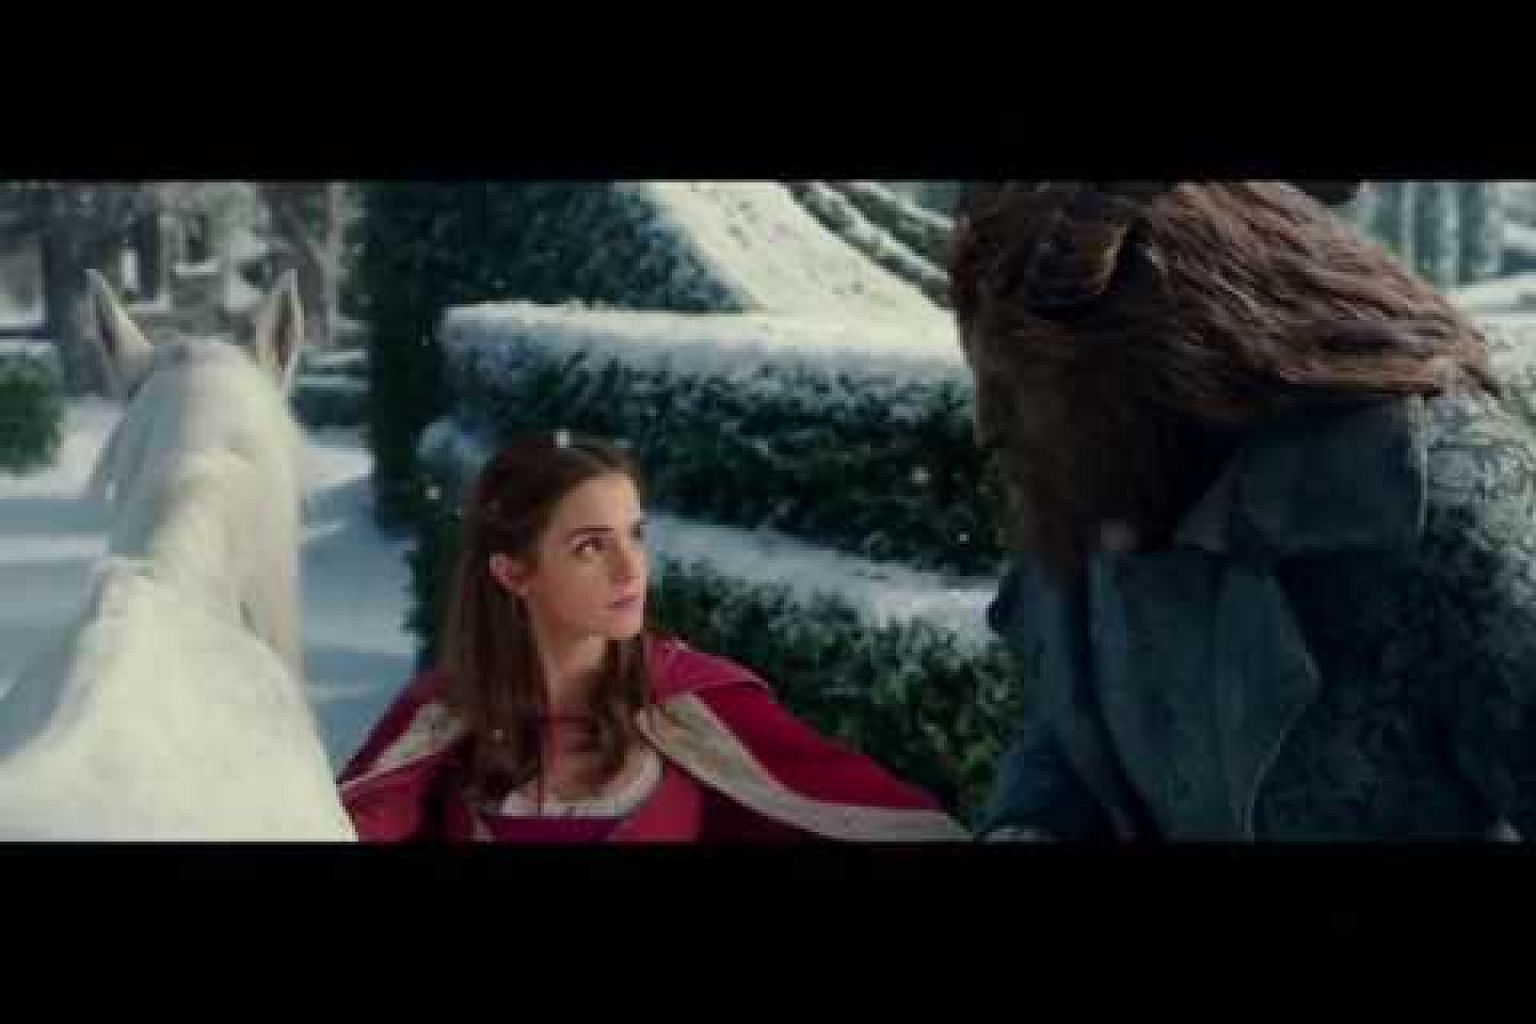 Beauty and the Beast trailer reveals more romance